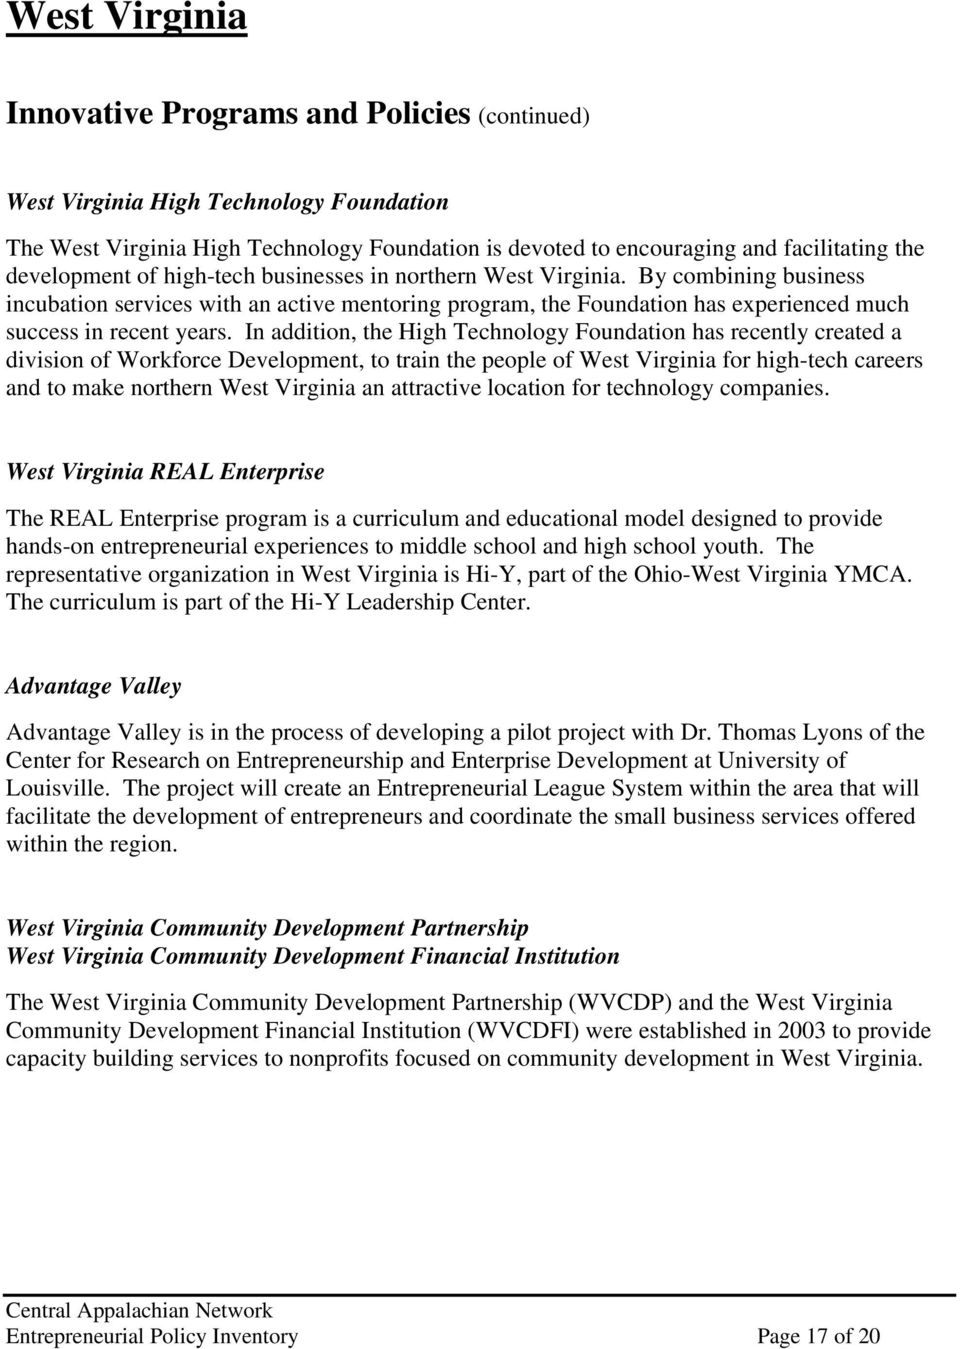 In addition, the High Technology Foundation has recently created a division of Workforce Development, to train the people of West Virginia for high-tech careers and to make northern West Virginia an